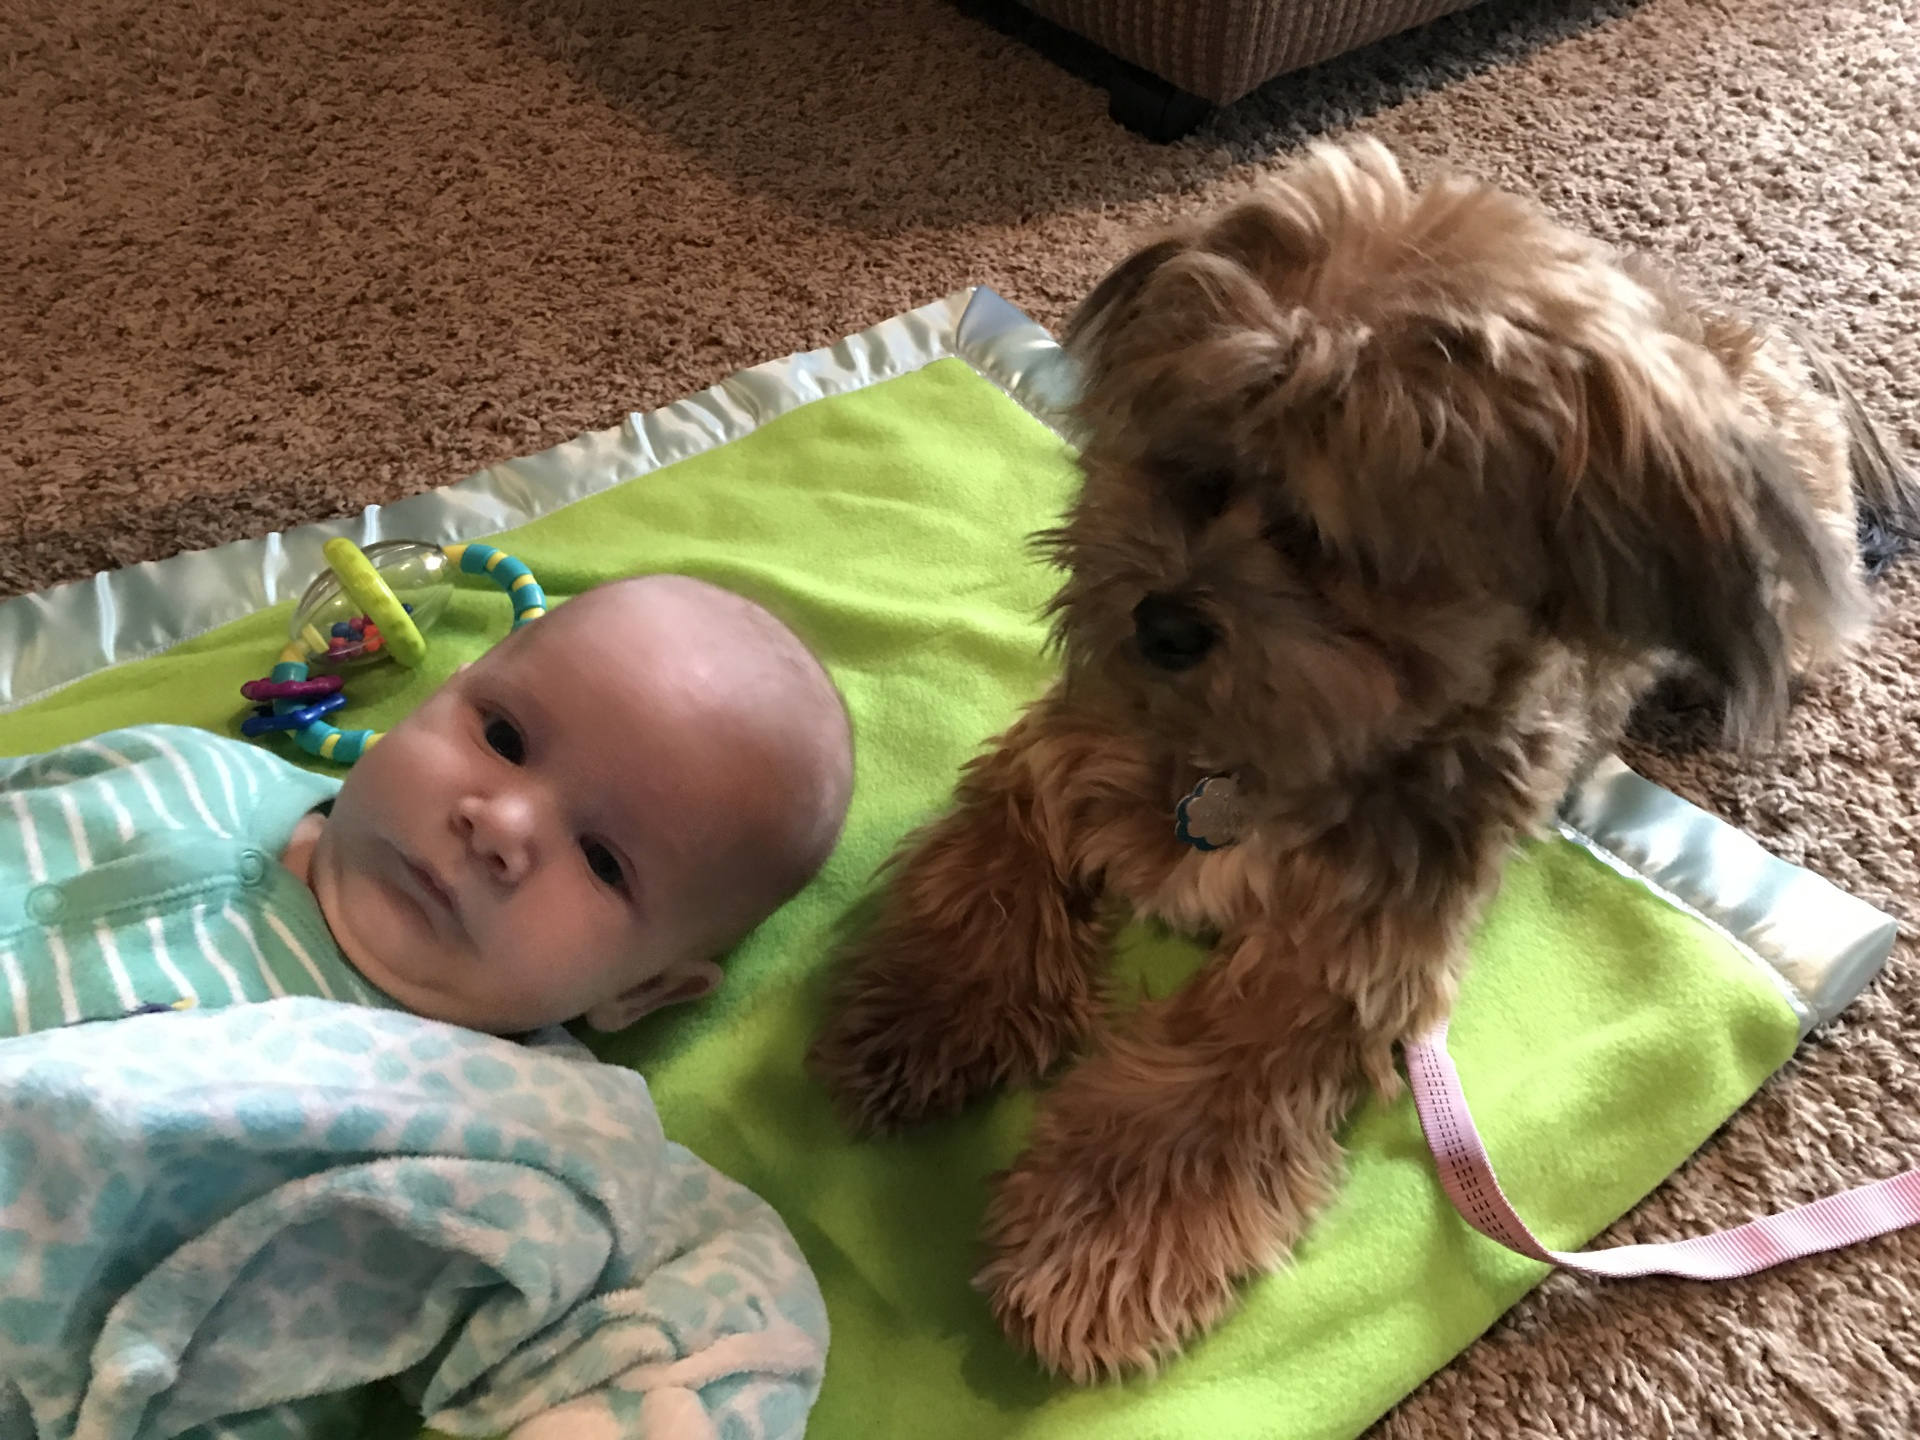 Denali loves babies